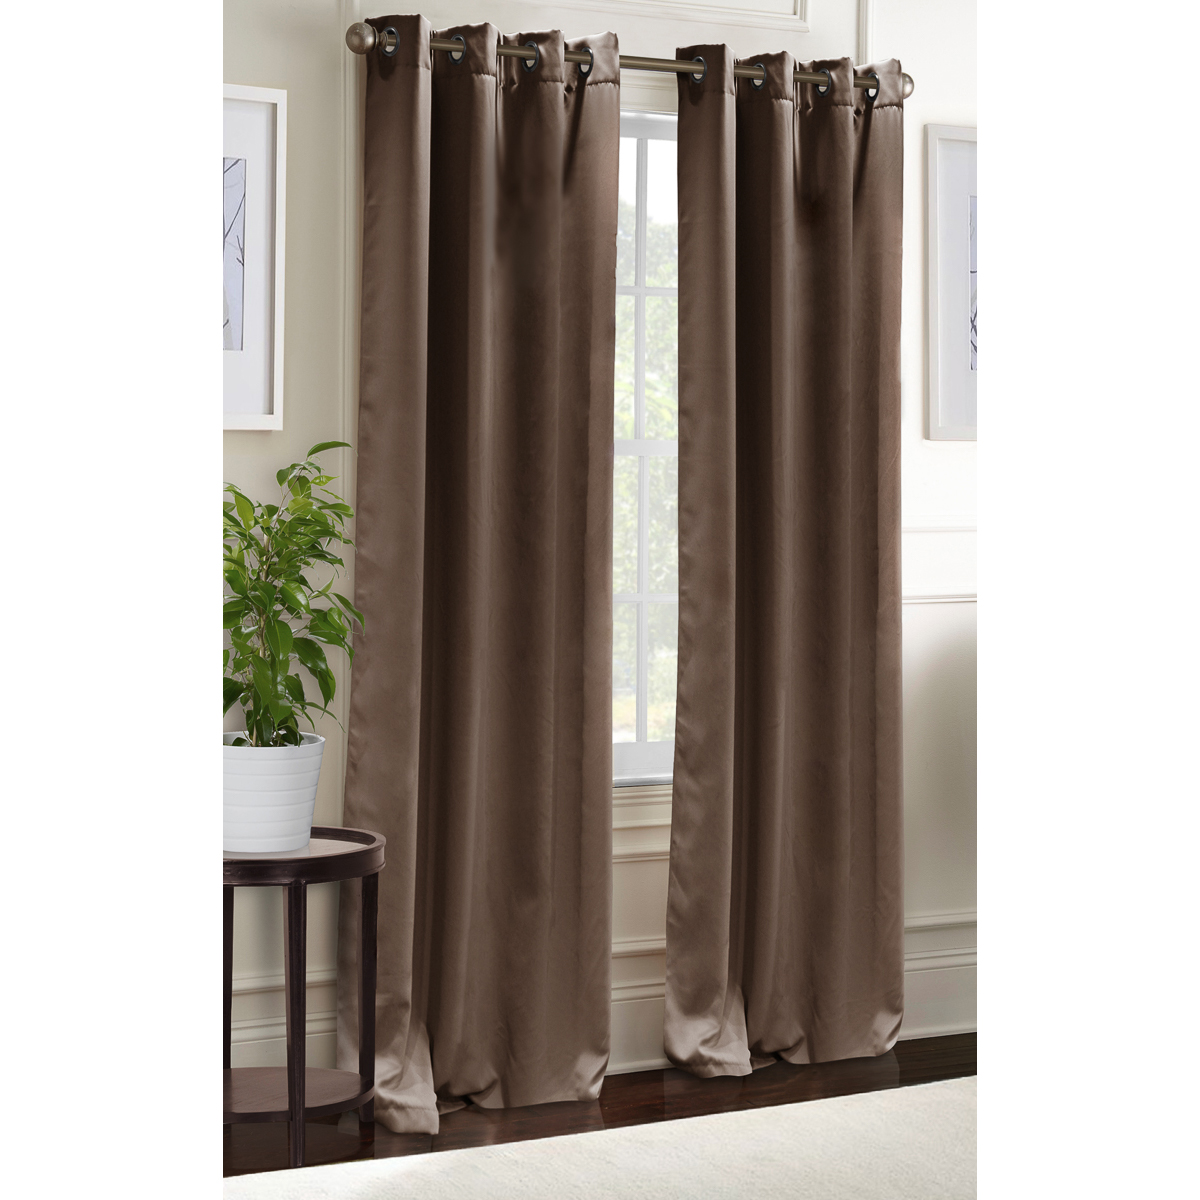 38 inch long curtains